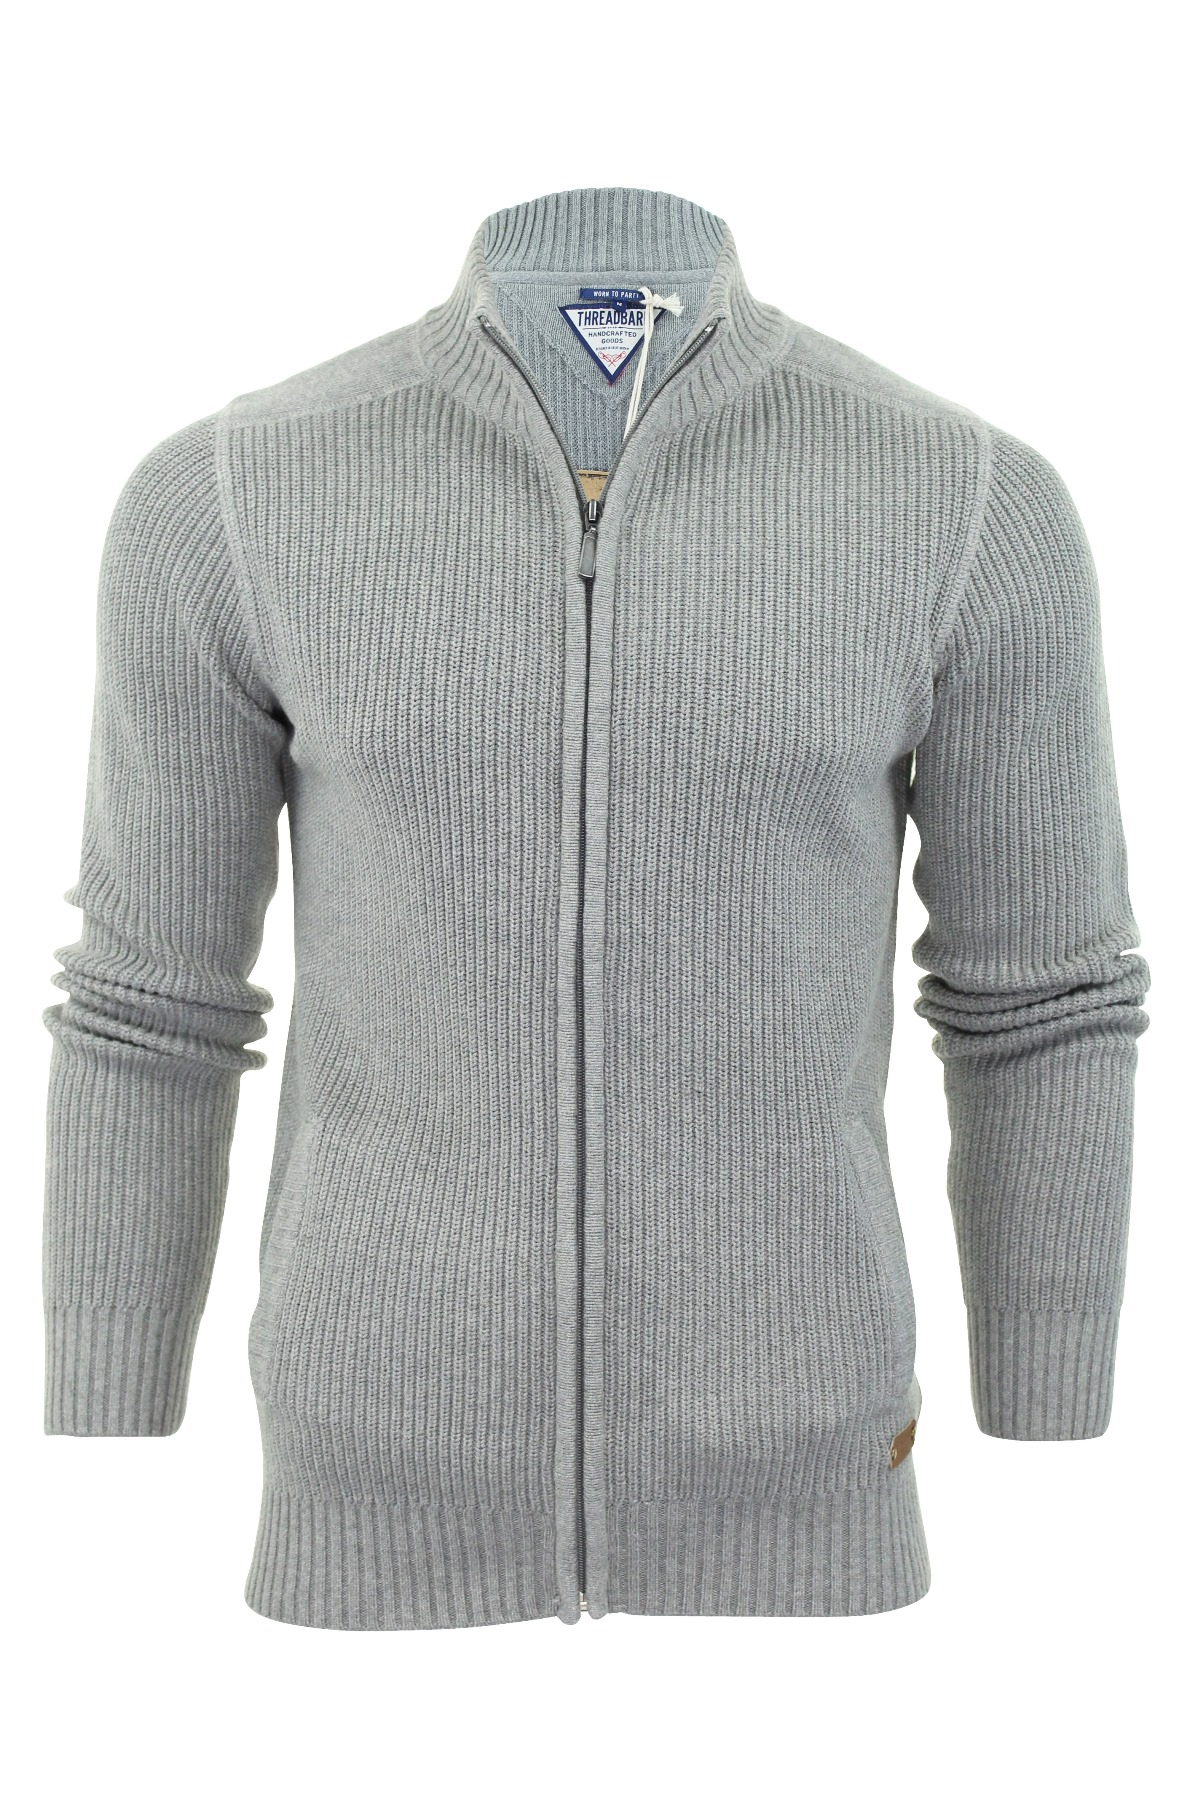 Mens Zip Up Cardigan Sweater - Cardigan With Buttons